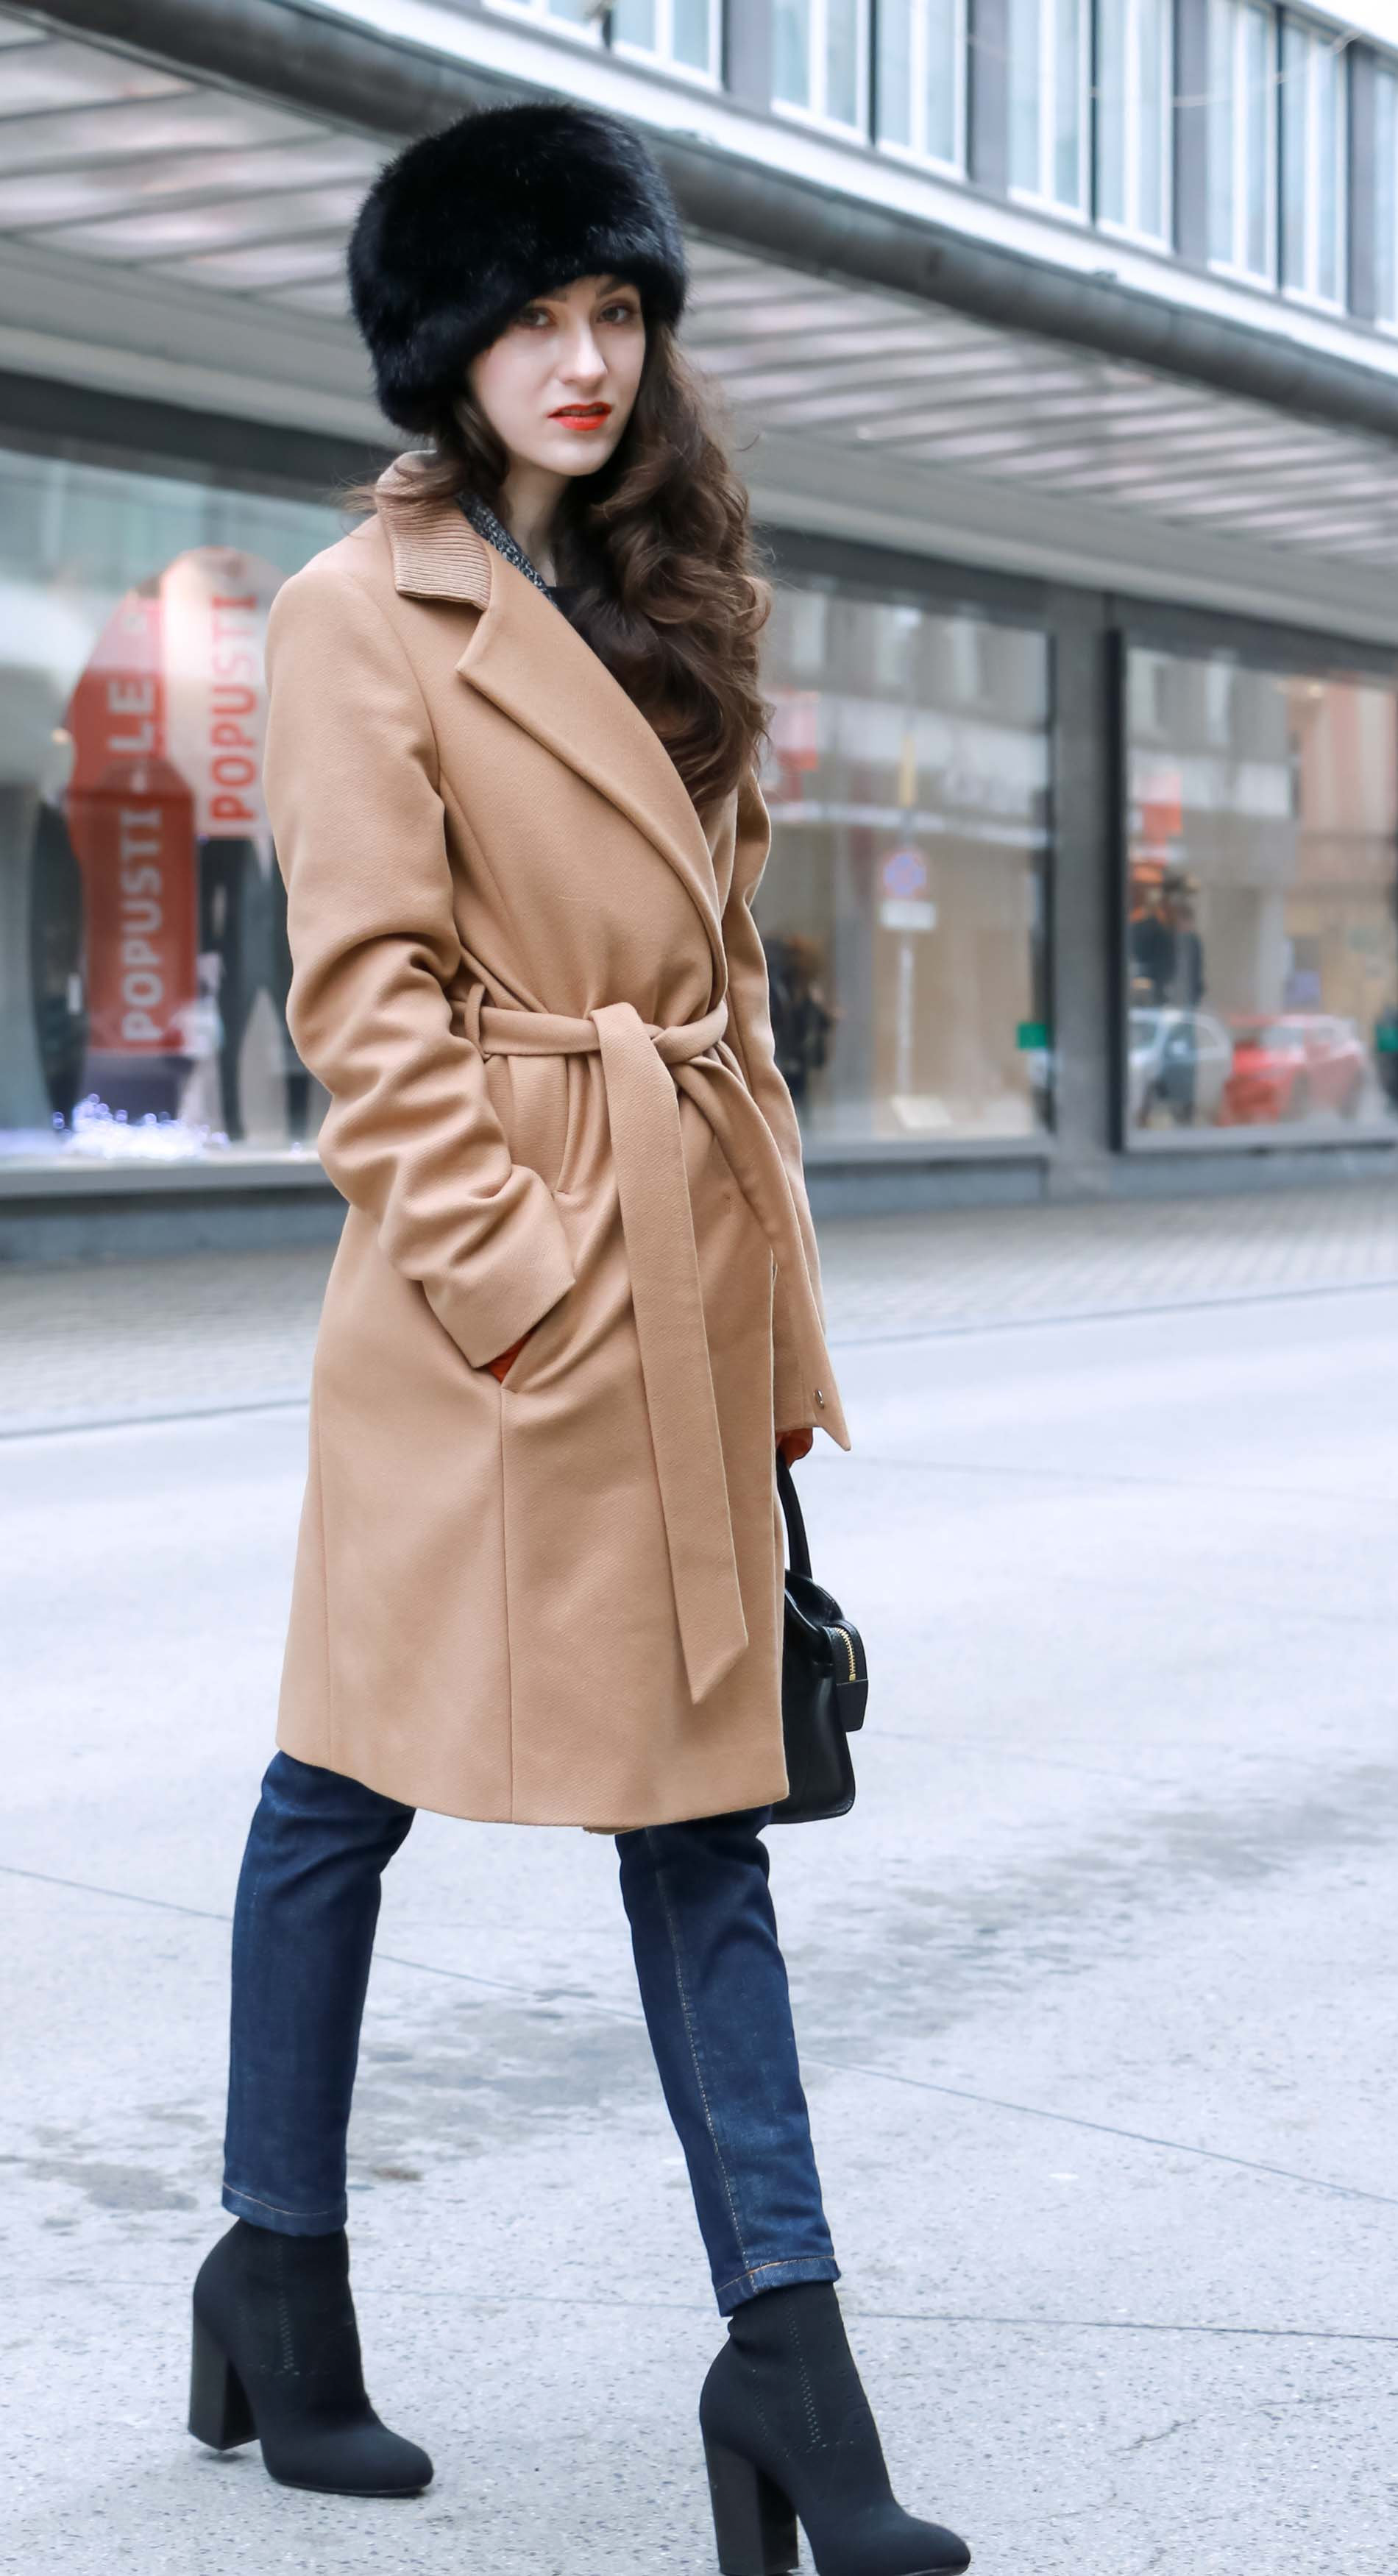 Veronika Lipar of Brunette from Wall Street wearing wrap Escada camel coat, A.P.C. dark tapered denim jeans, black sock boots from Elena Iachi, black fur hat and small black top handle bag while crossing street in Ljubljana